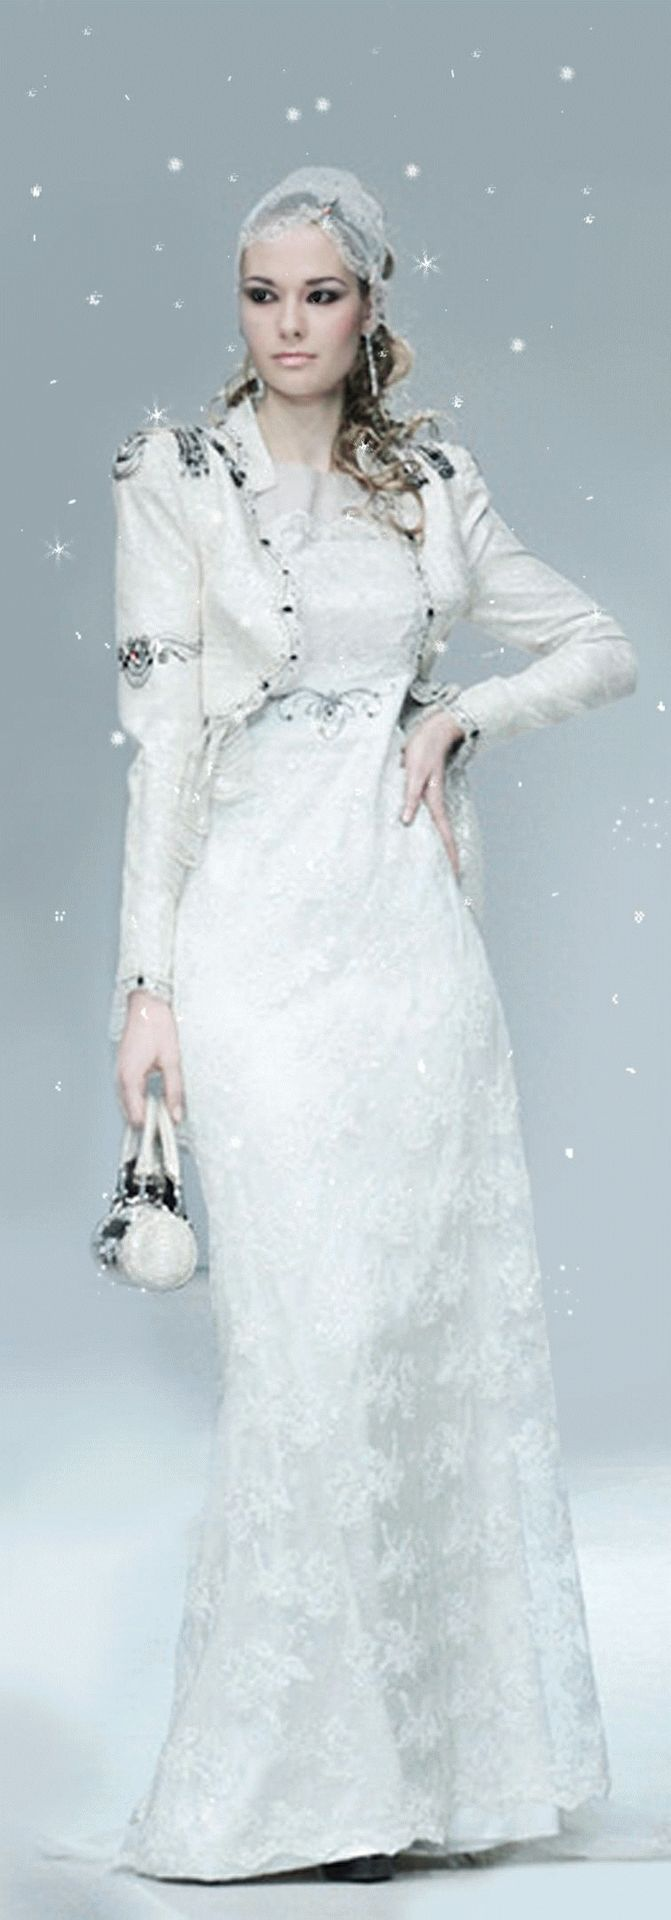 181 best Winter Wedding images on Pinterest | Bridal gowns ...